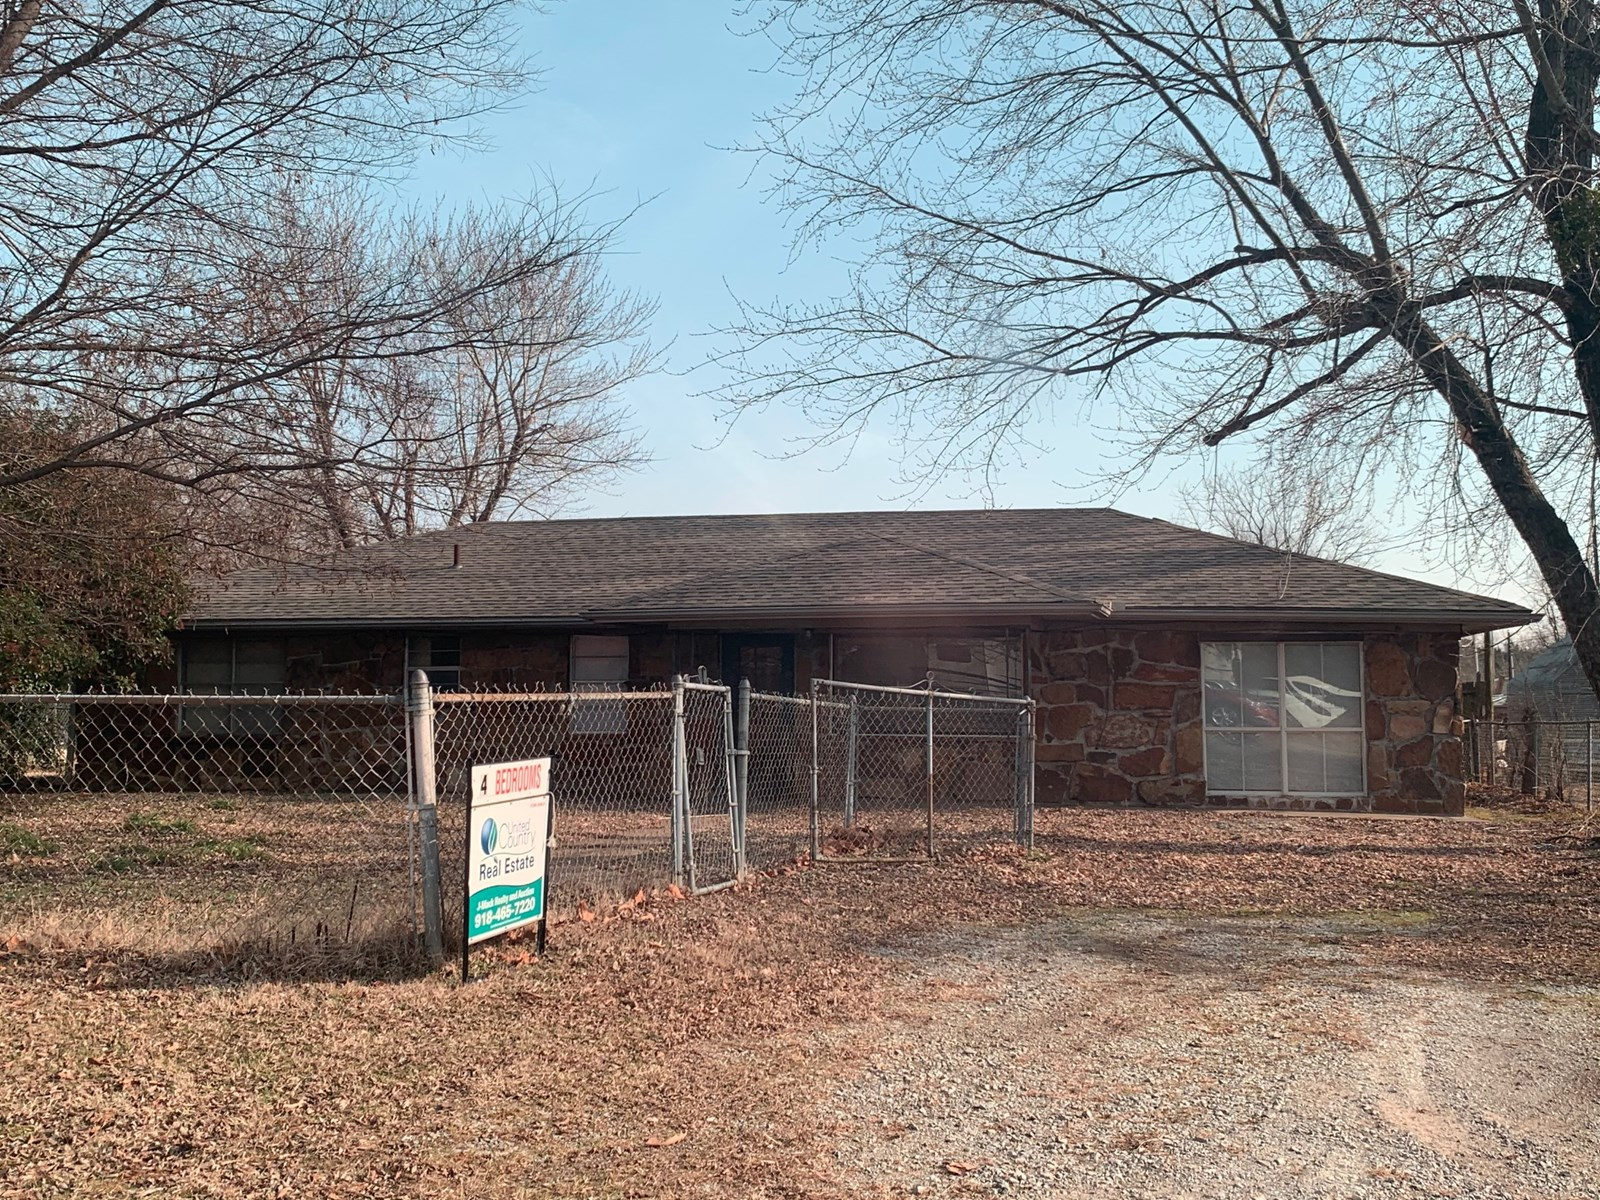 Home for sale Savanna, OK